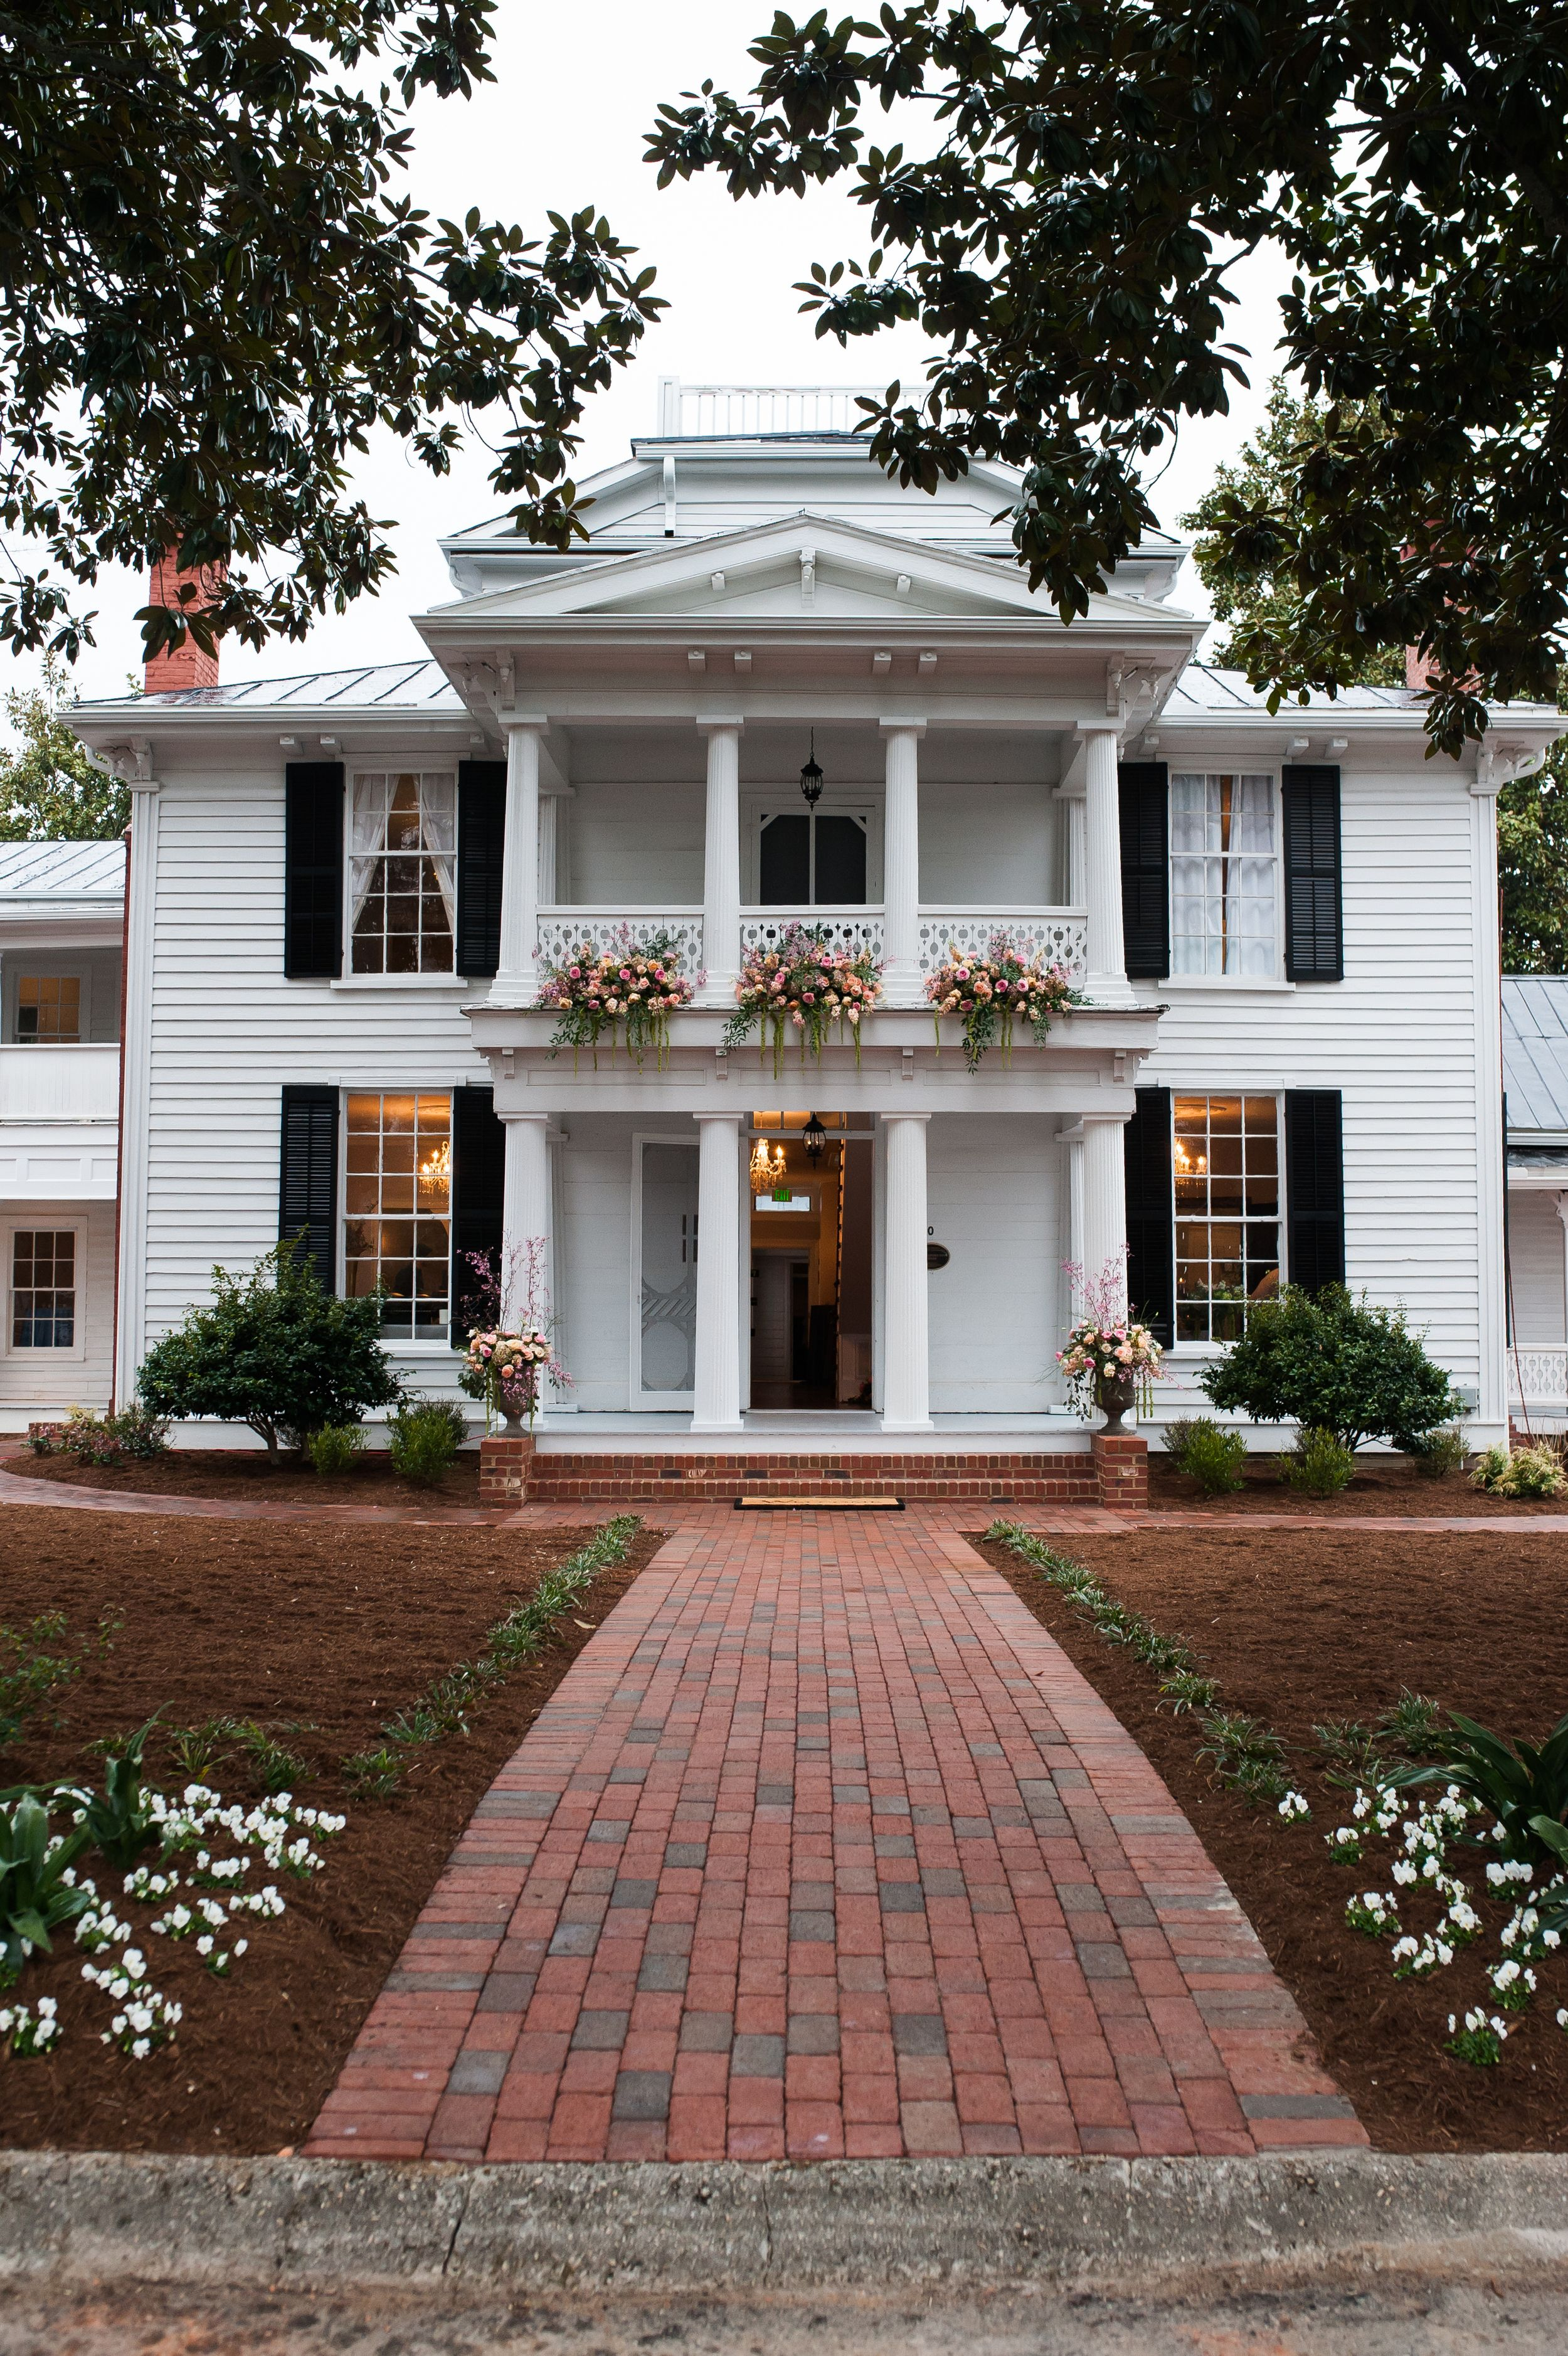 Beautiful White Two Story Colonial House With A Double Balcony Flower Box And Brick Pathway